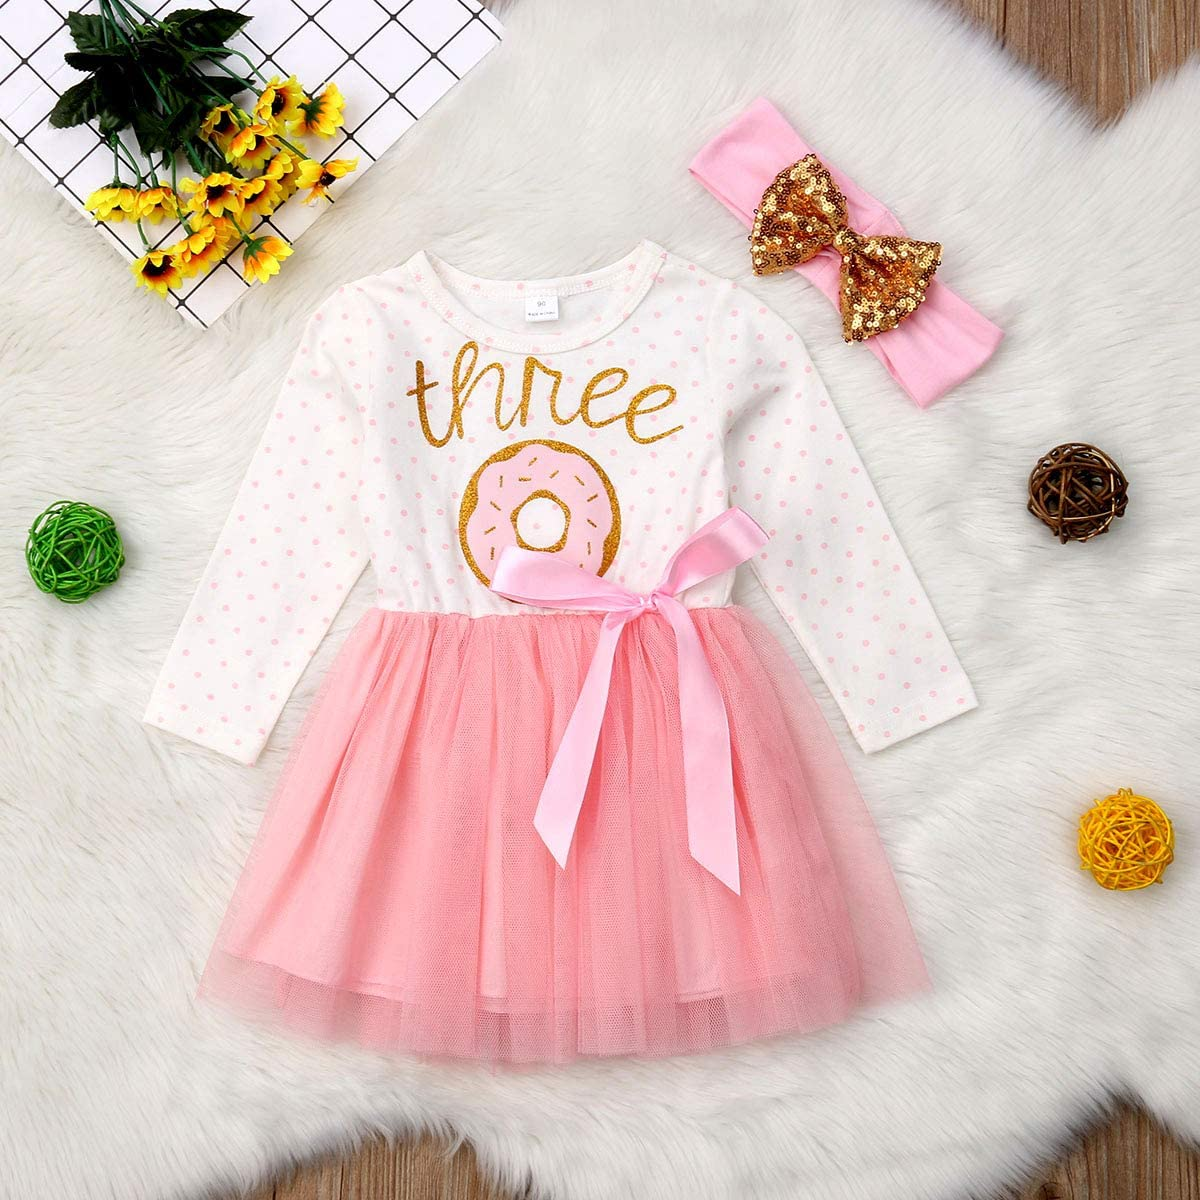 West Sweety Baby Girls Donut Printed Pink Tutu Birthday Dress Tulle Princess Dress with Gold Sequins Headband 2Pcs Outfits